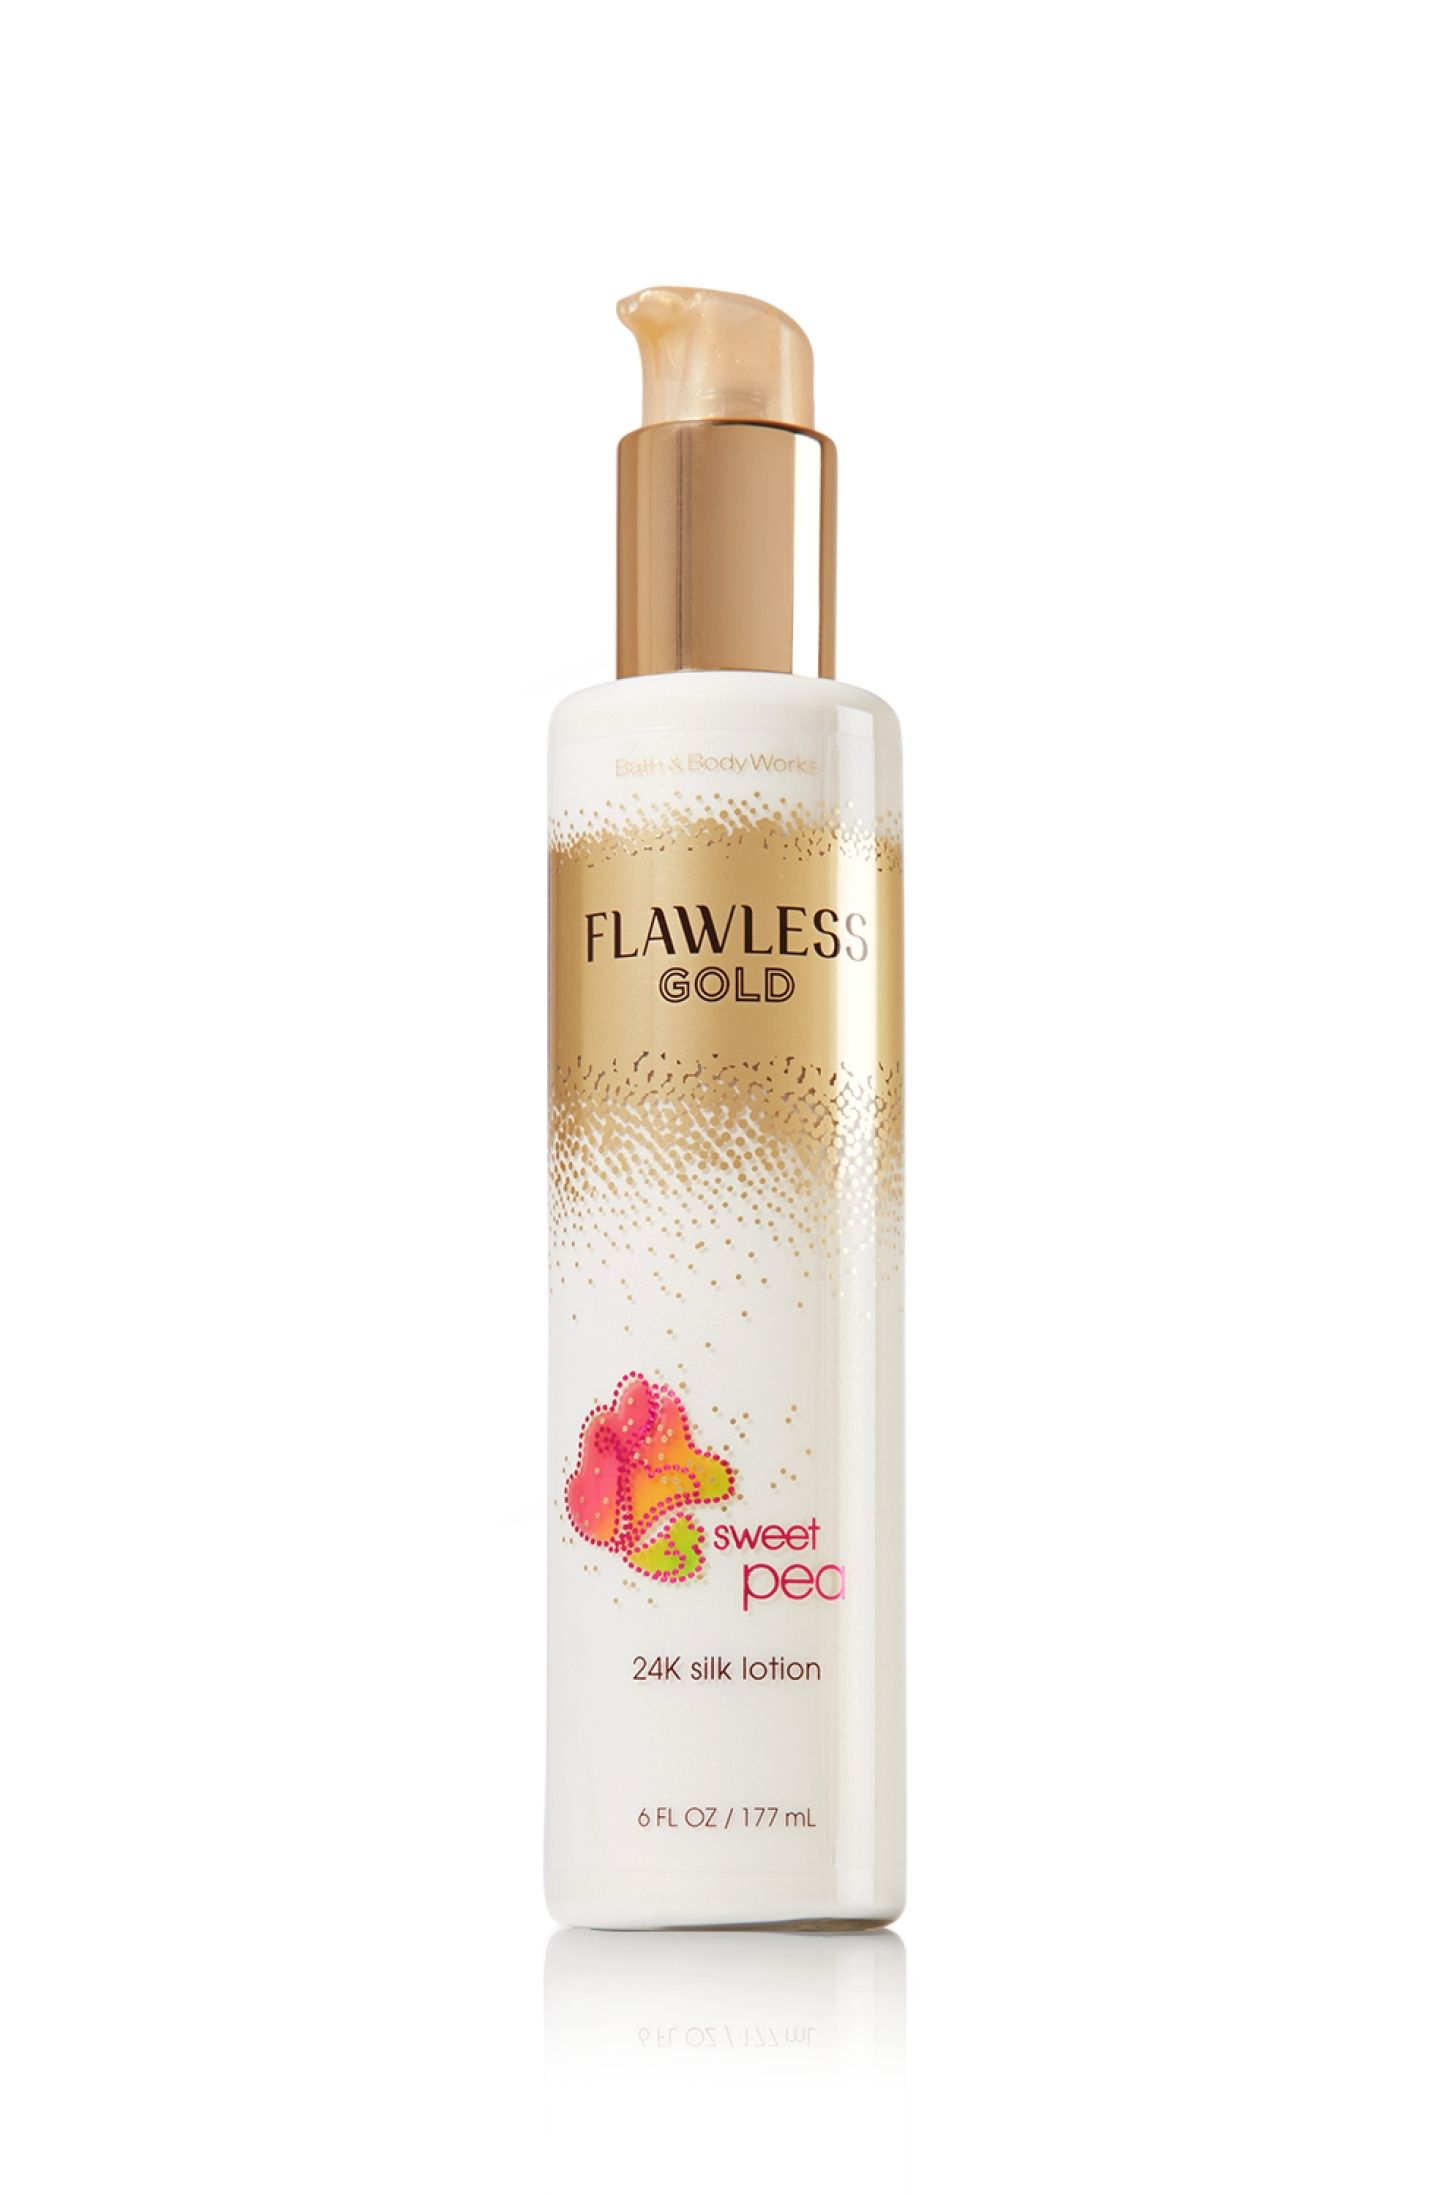 Sweet Pea Flawless 24k Silk Lotion Signature Collection Bath